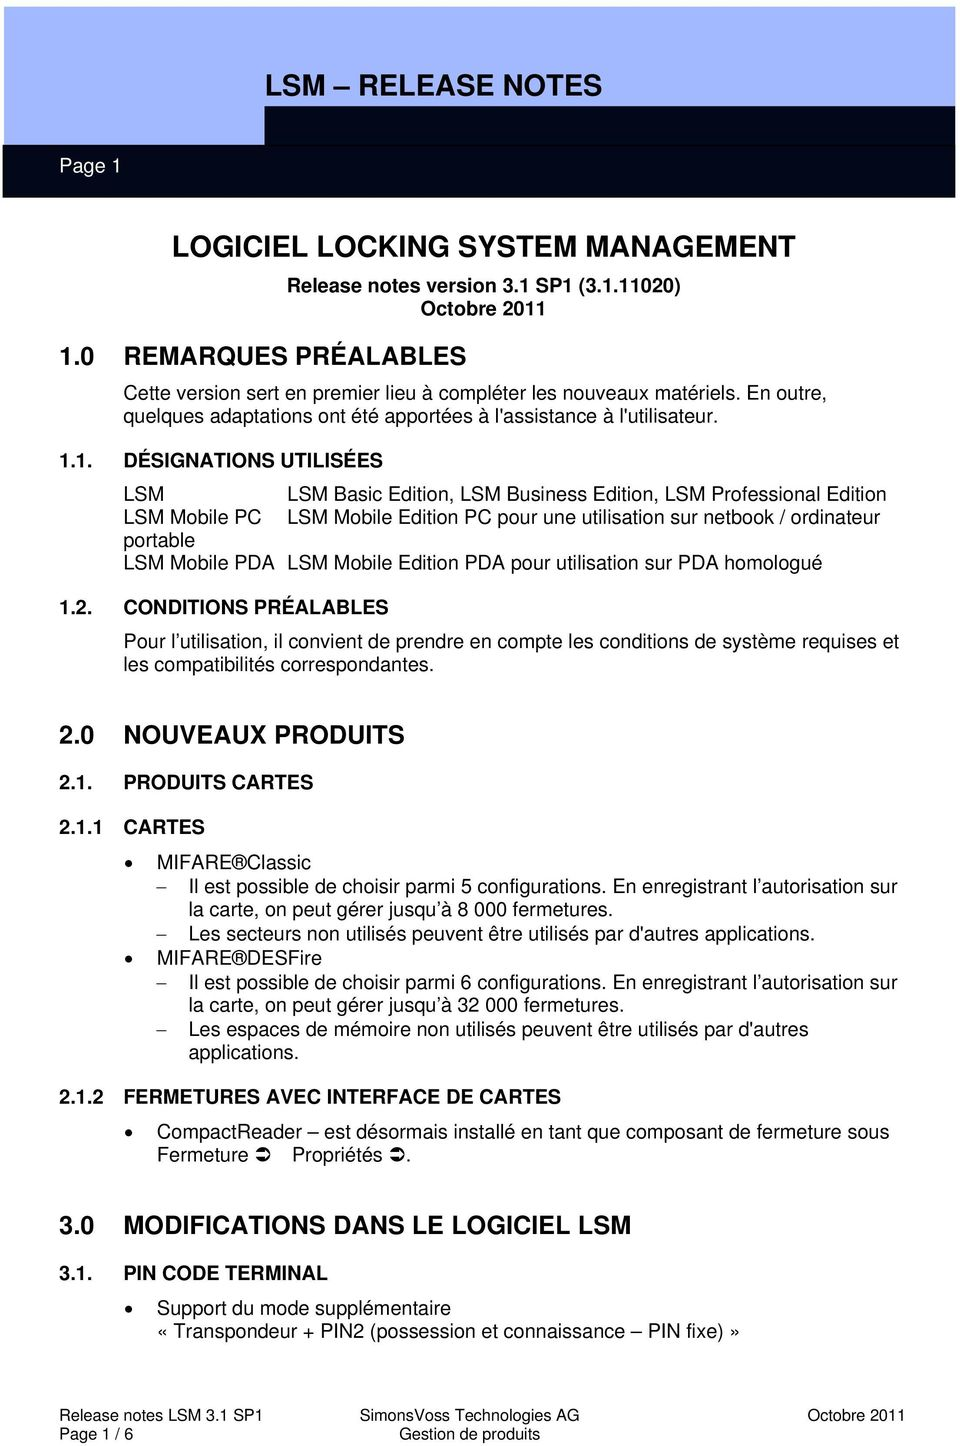 1. DÉSIGNATIONS UTILISÉES LSM LSM Basic Edition, LSM Business Edition, LSM Professional Edition LSM Mobile PC LSM Mobile Edition PC pour une utilisation sur netbook / ordinateur portable LSM Mobile